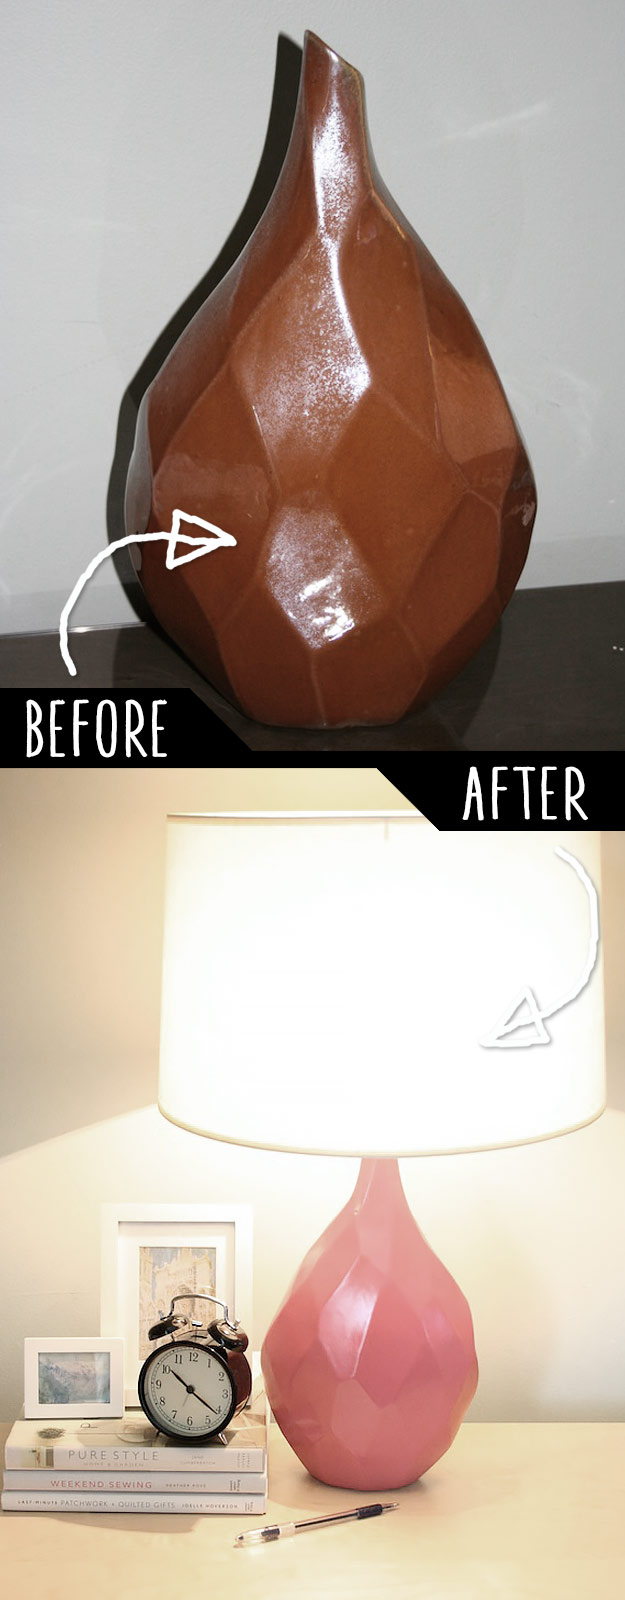 DIY Furniture Hacks   Old Unused Vase into an Adorable Table Lamp   Cool Ideas for Creative Do It Yourself Furniture   Cheap Home Decor Ideas for Bedroom, Bathroom, Living Room, Kitchen #diy